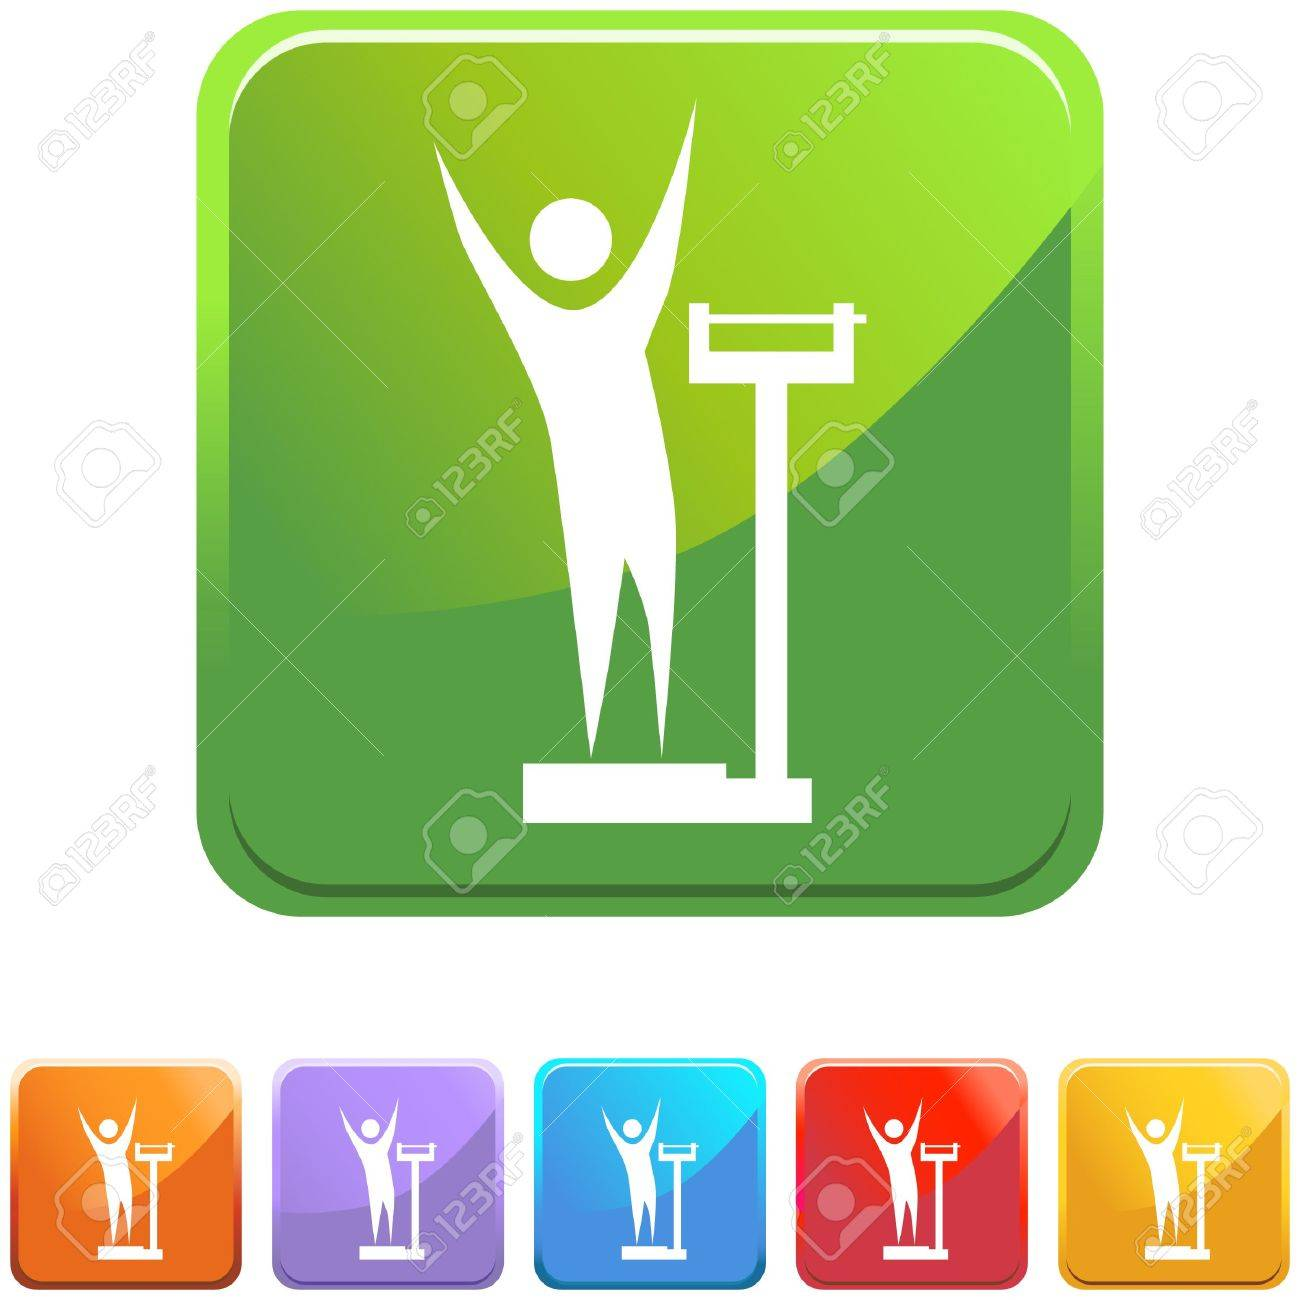 Weight Loss Stock Vector - 6830652